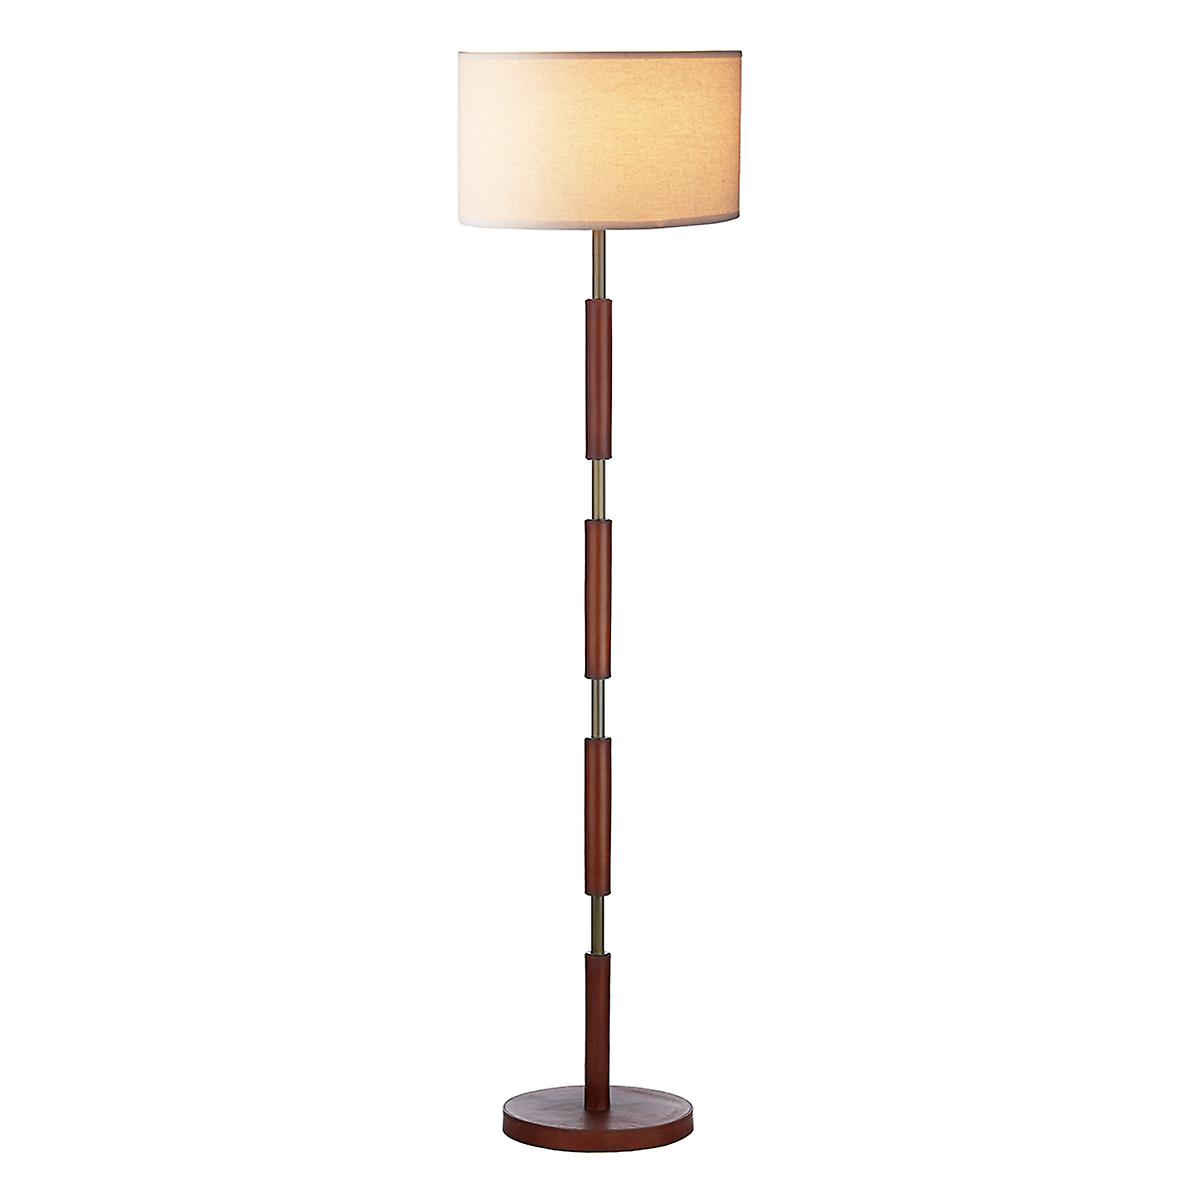 David Hunt SA993 Saddler Leather Effect Floor Lamp Only - Shade Not Supplied